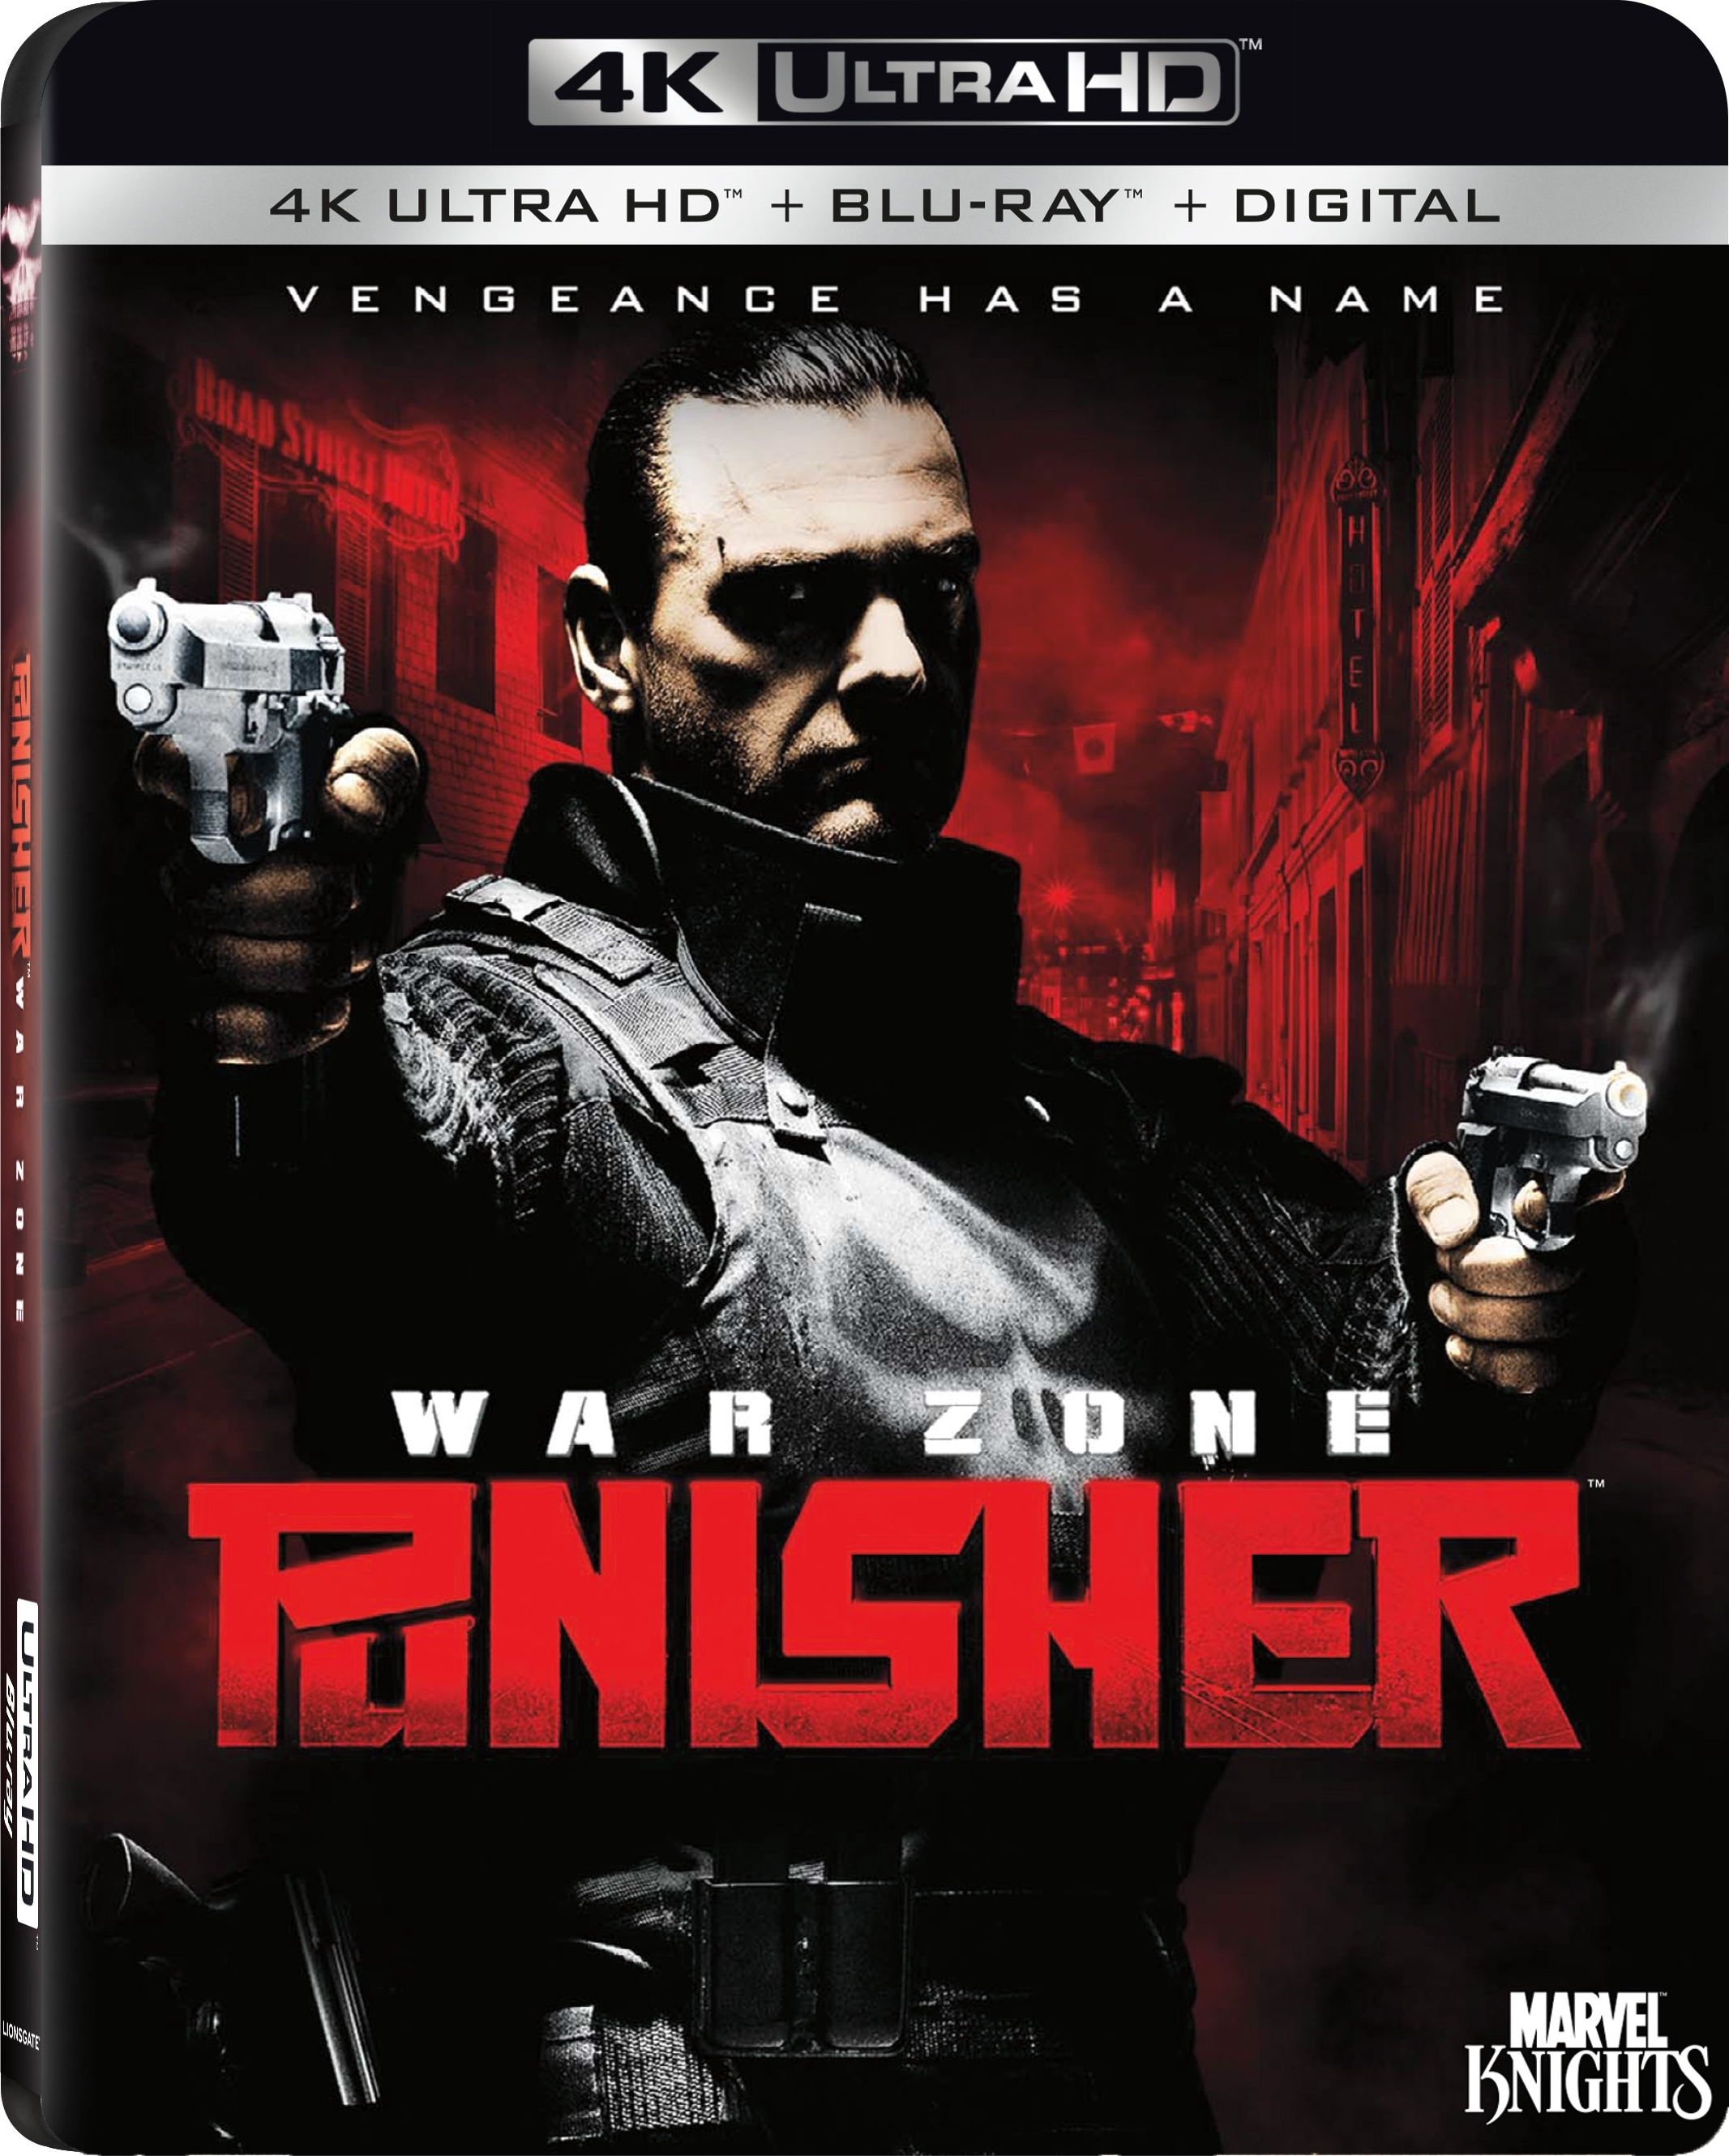 电影 惩罚者2 下载_惩罚者2:战争特区 Punisher.War.Zone.2008.UHD.2160p.BluRay.Remux.HEVC.HDR.Atmos ...